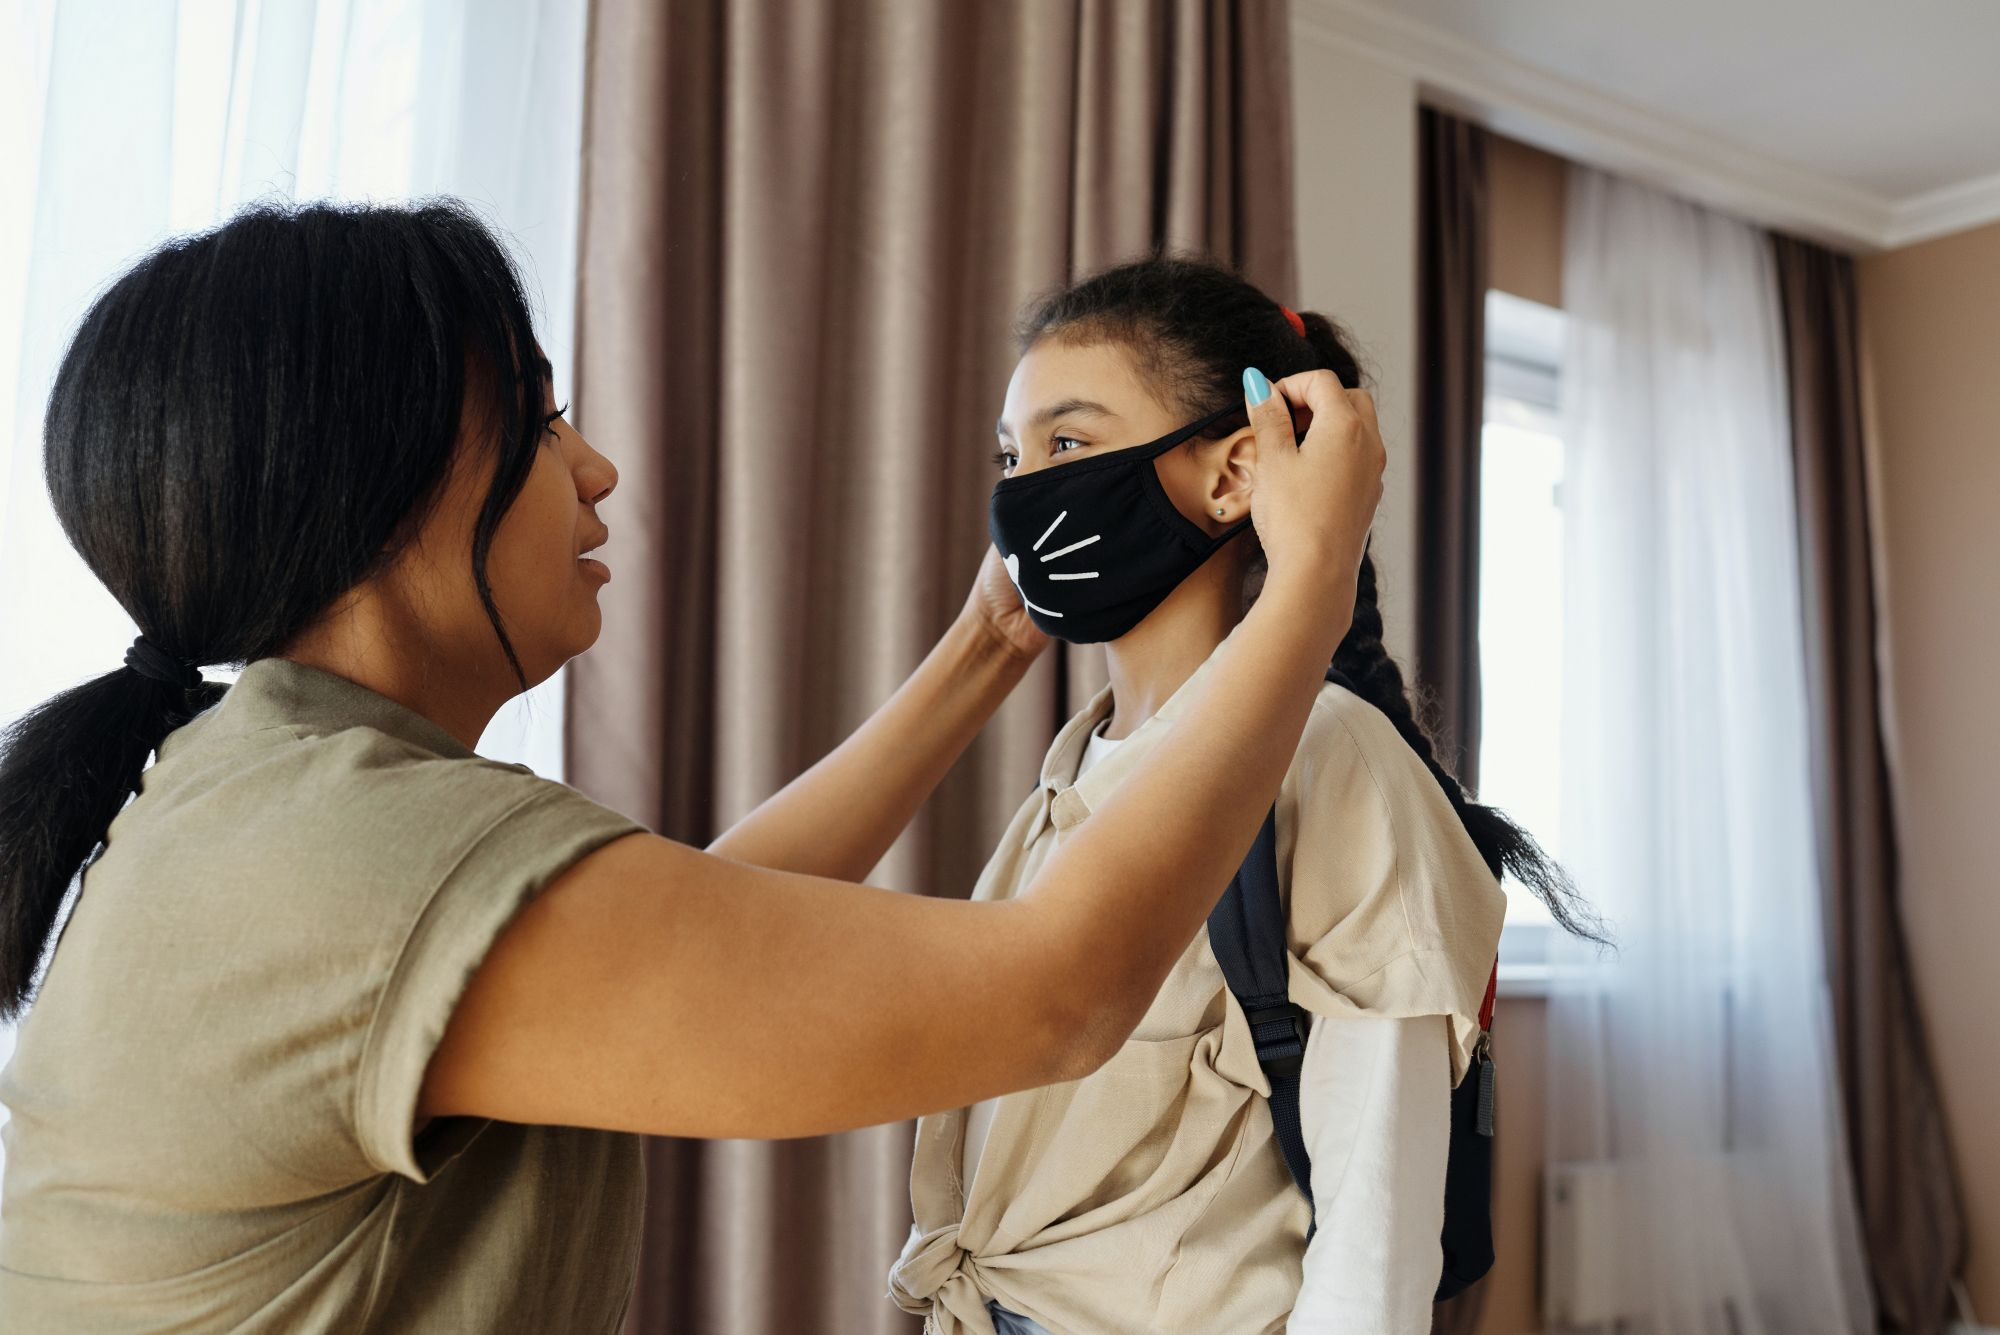 Are Face Masks Here to Stay Even After the Covid-19 Pandemic?